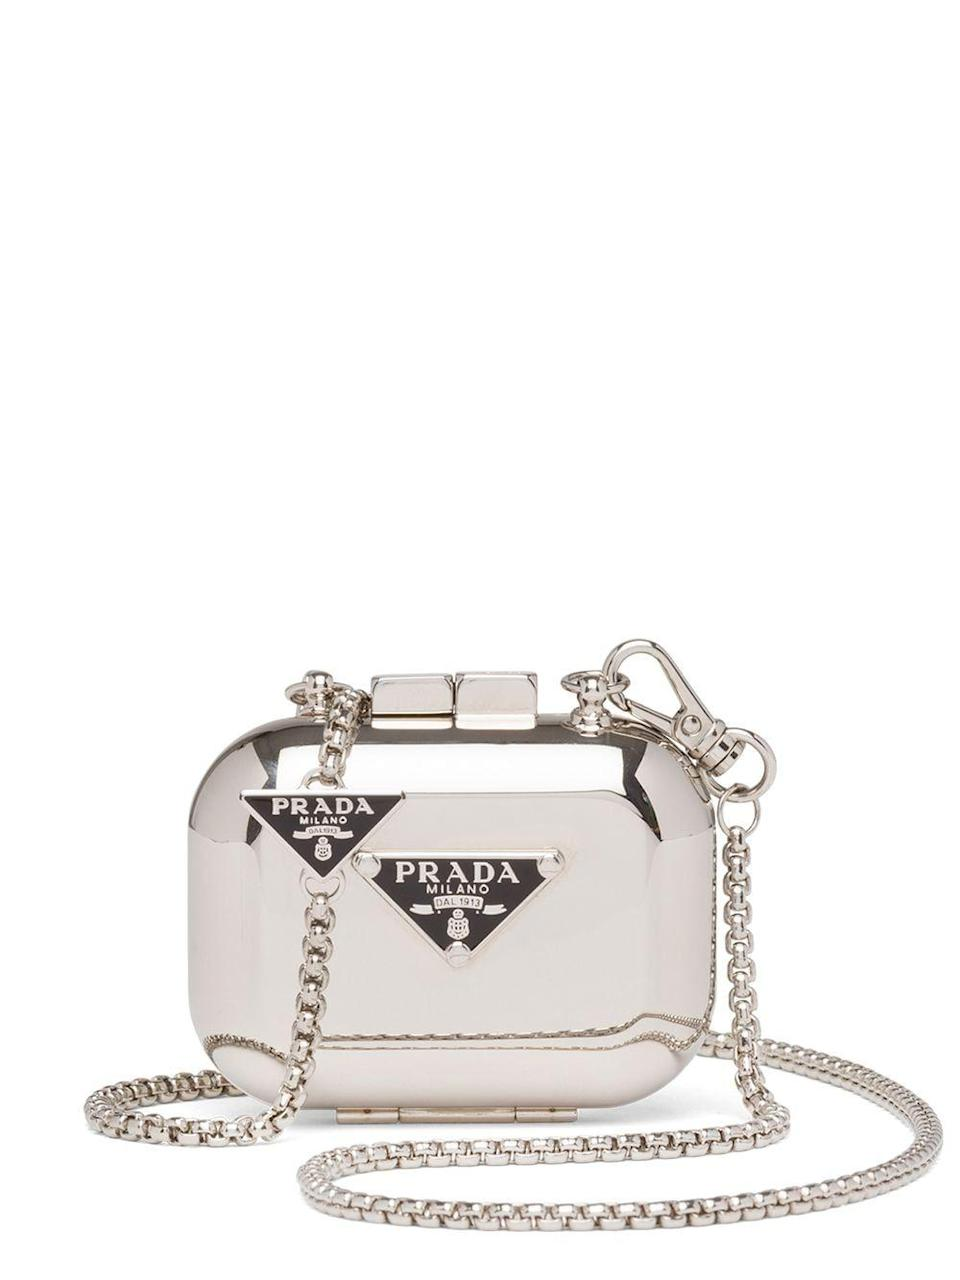 "<p><strong>Prada</strong></p><p>farfetch.com</p><p><strong>$1120.00</strong></p><p><a href=""https://go.redirectingat.com?id=74968X1596630&url=https%3A%2F%2Fwww.farfetch.com%2Fshopping%2Fwomen%2Fprada-aidpods-pro-case-item-16437333.aspx&sref=https%3A%2F%2Fwww.harpersbazaar.com%2Ffashion%2Ftrends%2Fg4475%2Ftech-gifts-for-women%2F"" rel=""nofollow noopener"" target=""_blank"" data-ylk=""slk:Shop Now"" class=""link rapid-noclick-resp"">Shop Now</a></p><p>The only thing more luxe than a new pair of AirPods is a new designer case to store them in. </p>"